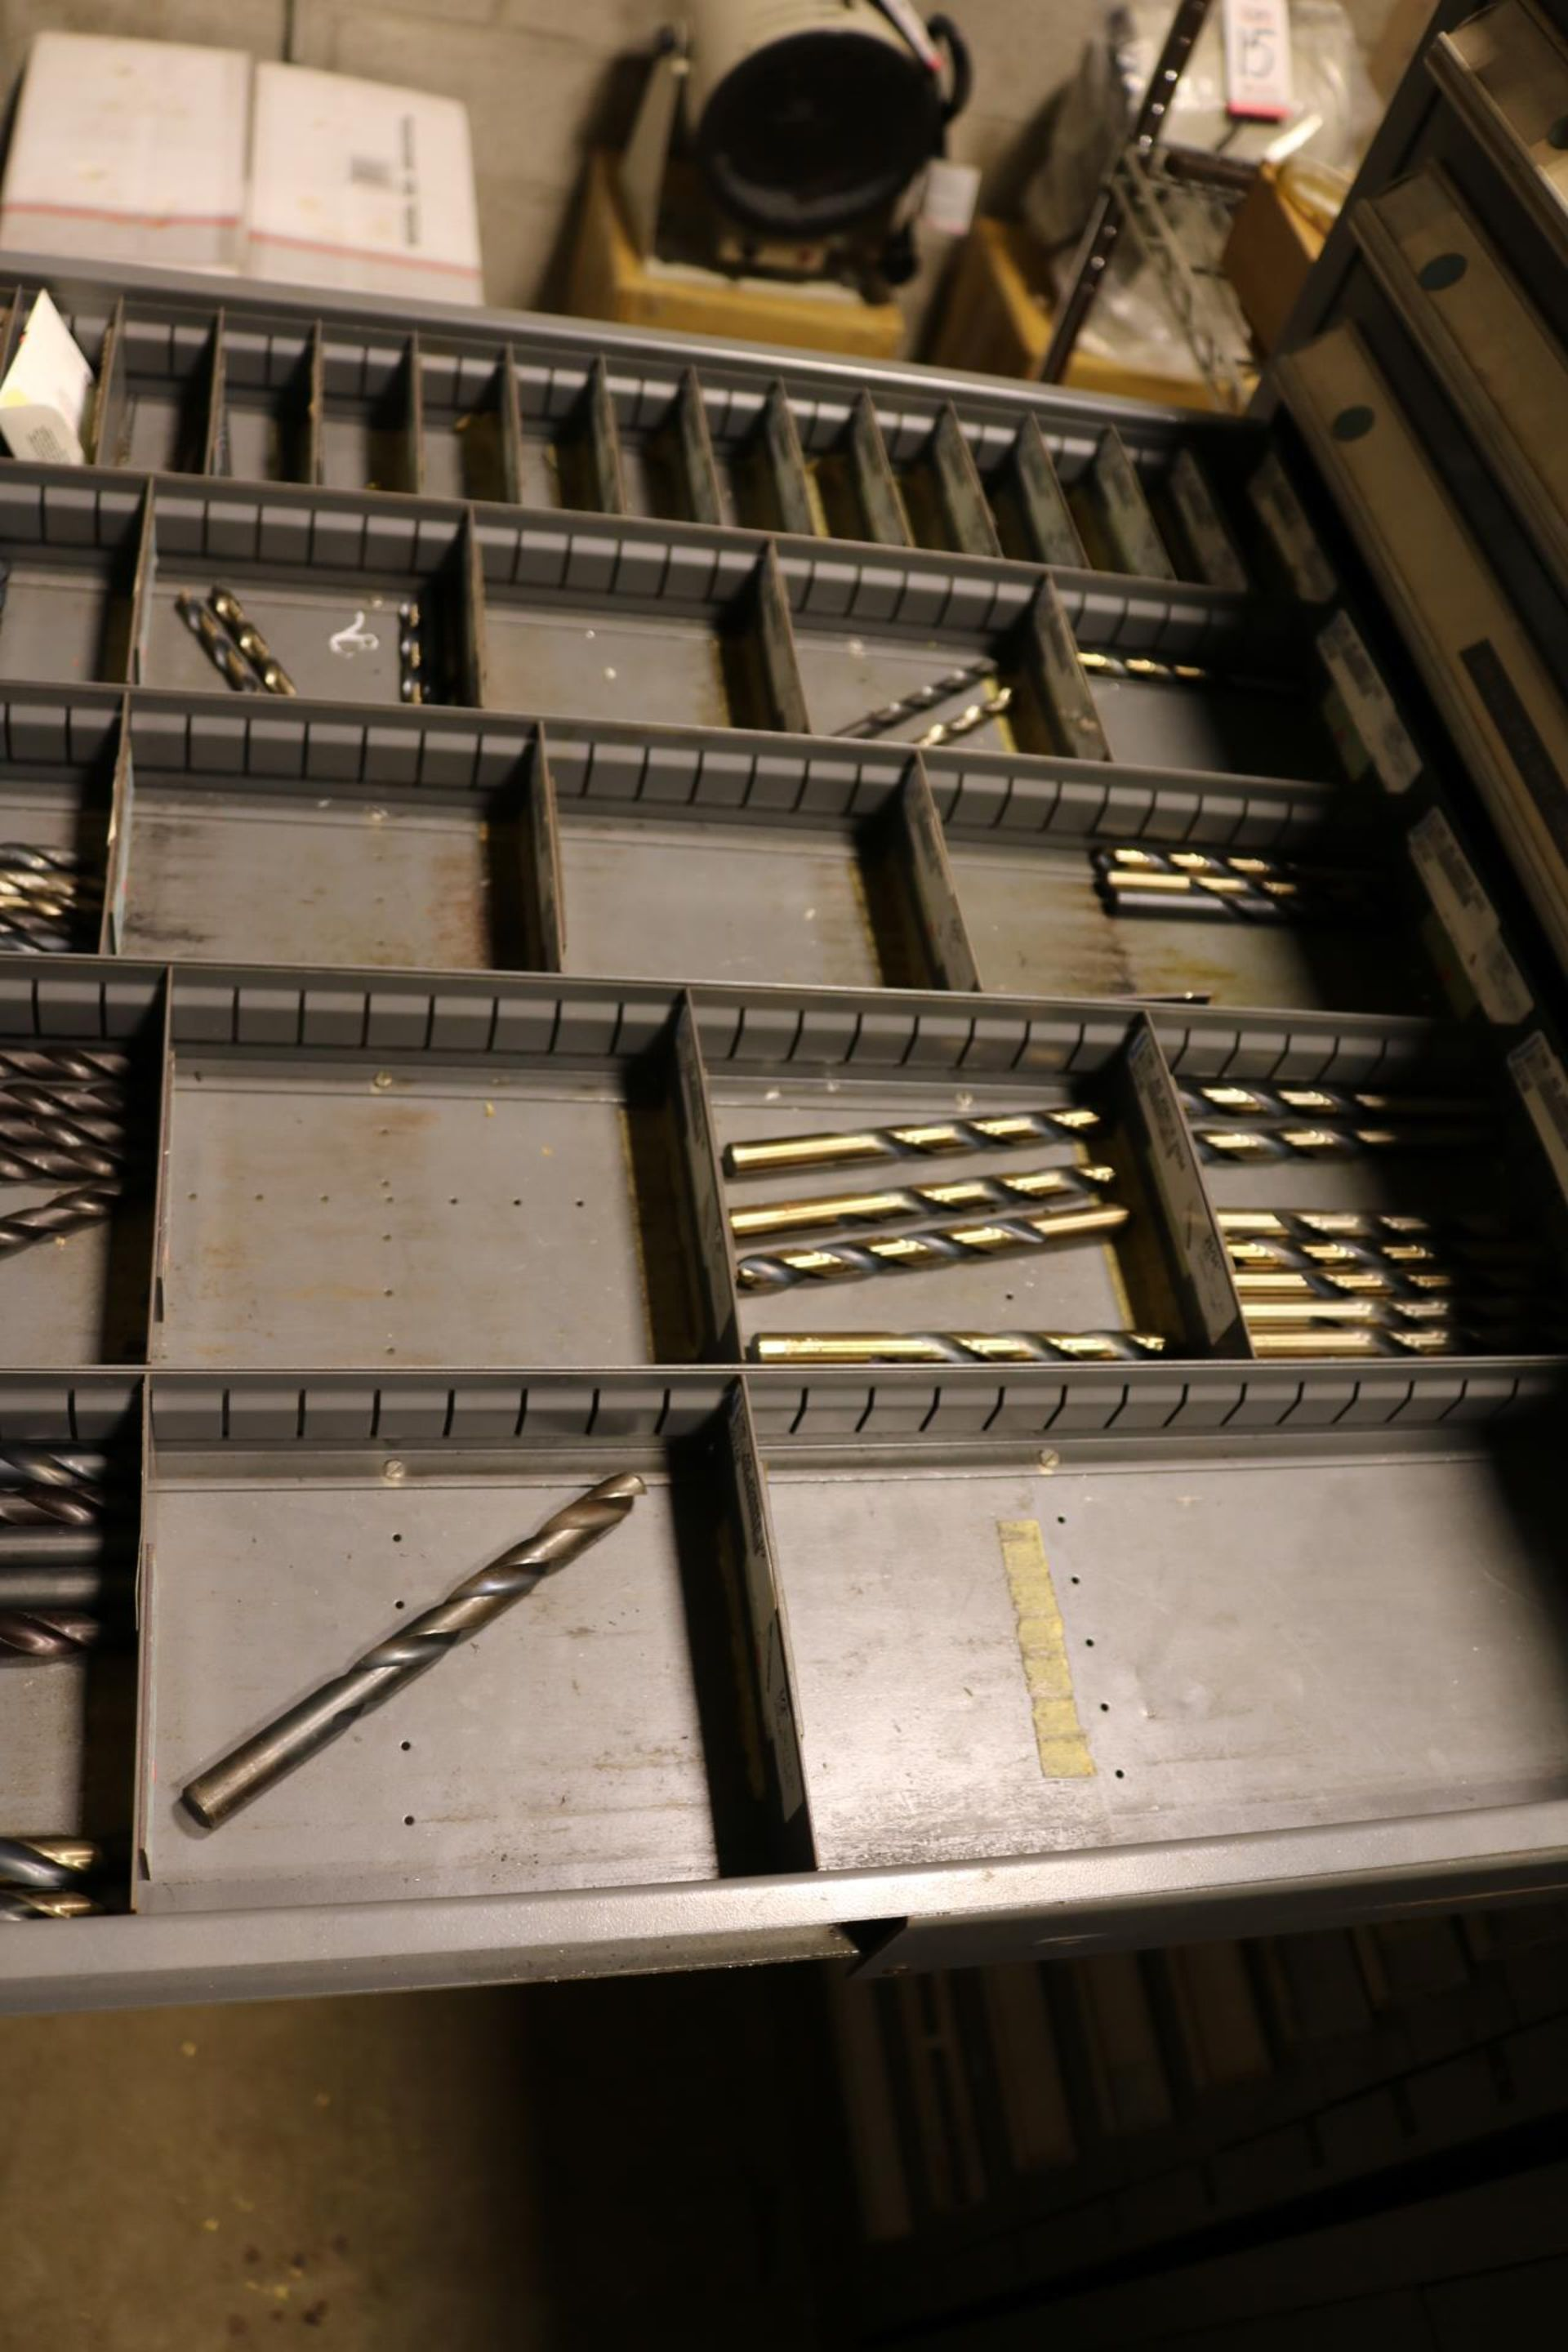 Lot 28 - STANLEY VIDMAR 13-DRAWER PARTS/TOOL CABINET, W/ CONTENTS TO INCLUDE: REAMERS, DRILLS, TAPER SHANK